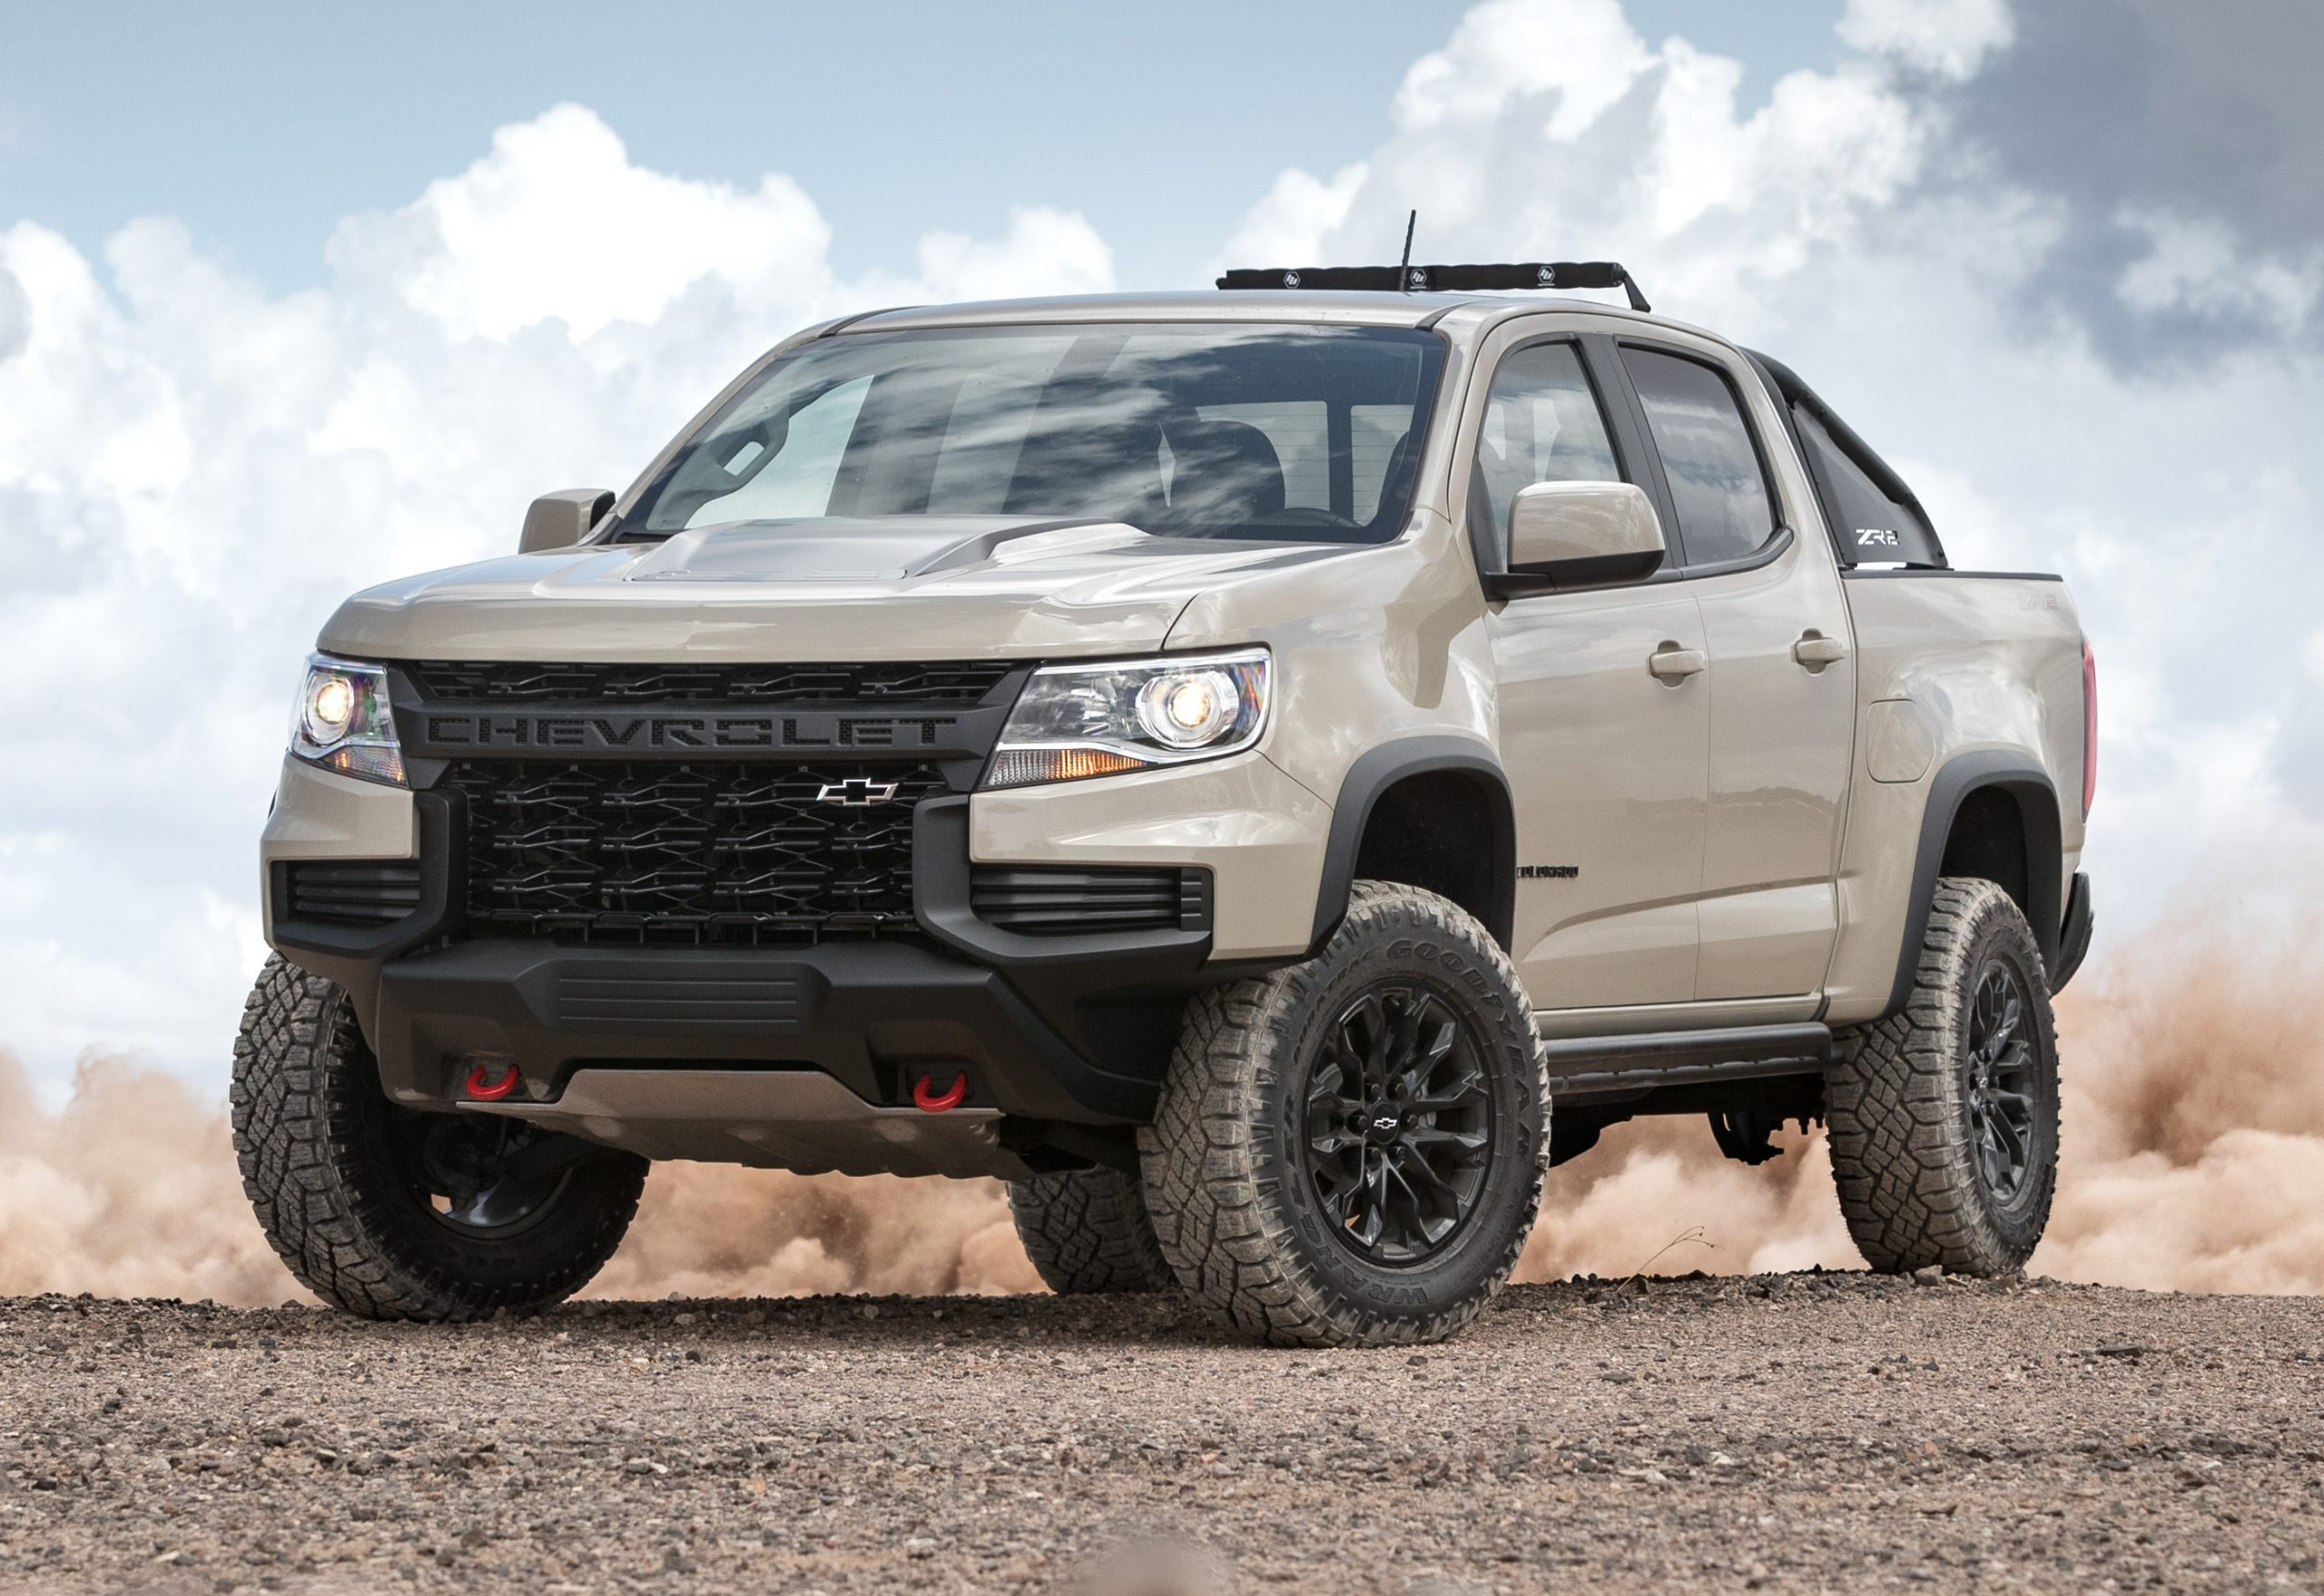 2021 Chevy Colorado Zr2 Gets New Front End Design How Much Is A 2021 Chevy Colorado Z71